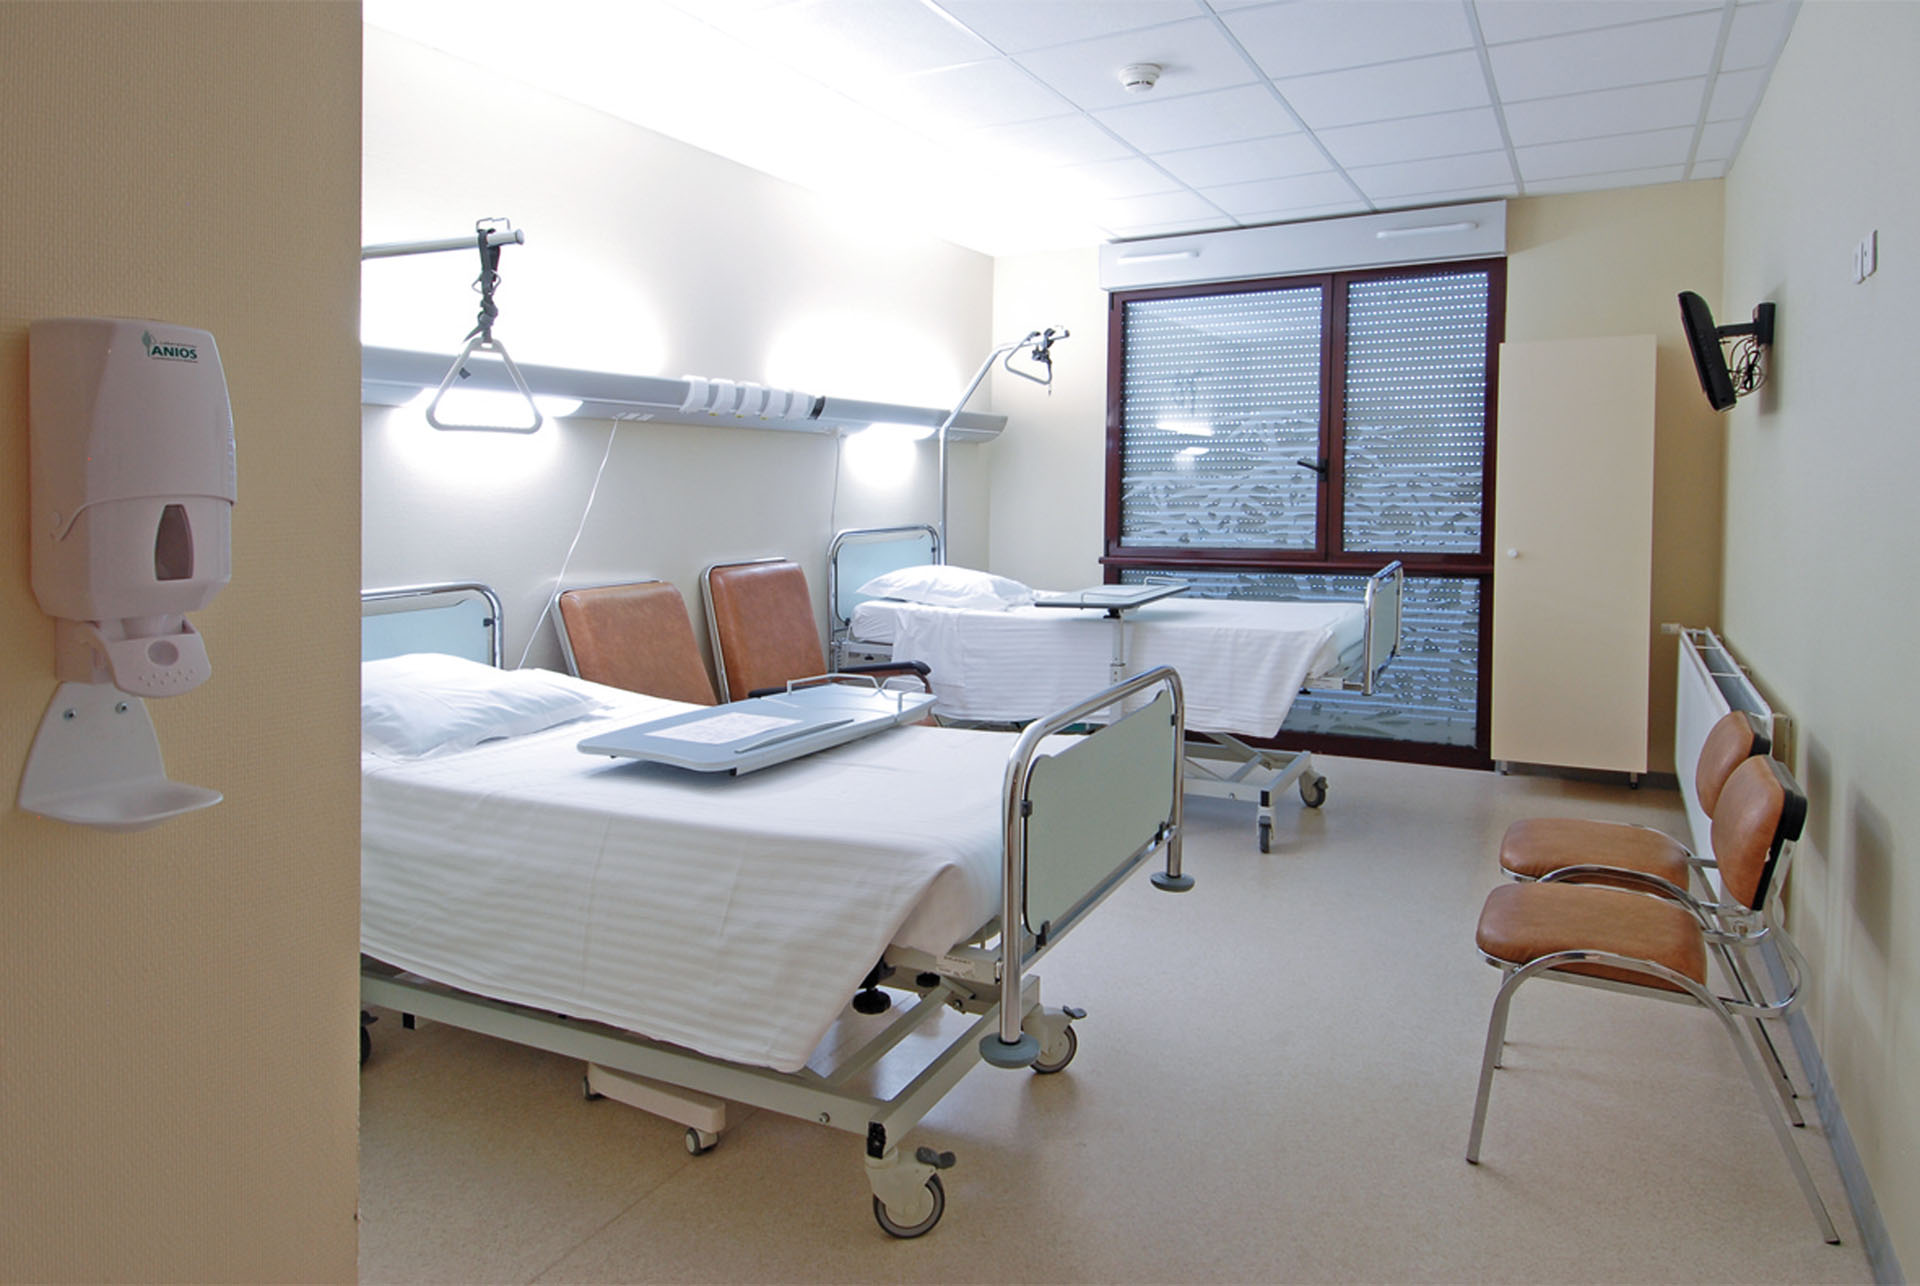 Emejing confidentialite chambre double hopital photos - Confidentialite chambre double hopital ...